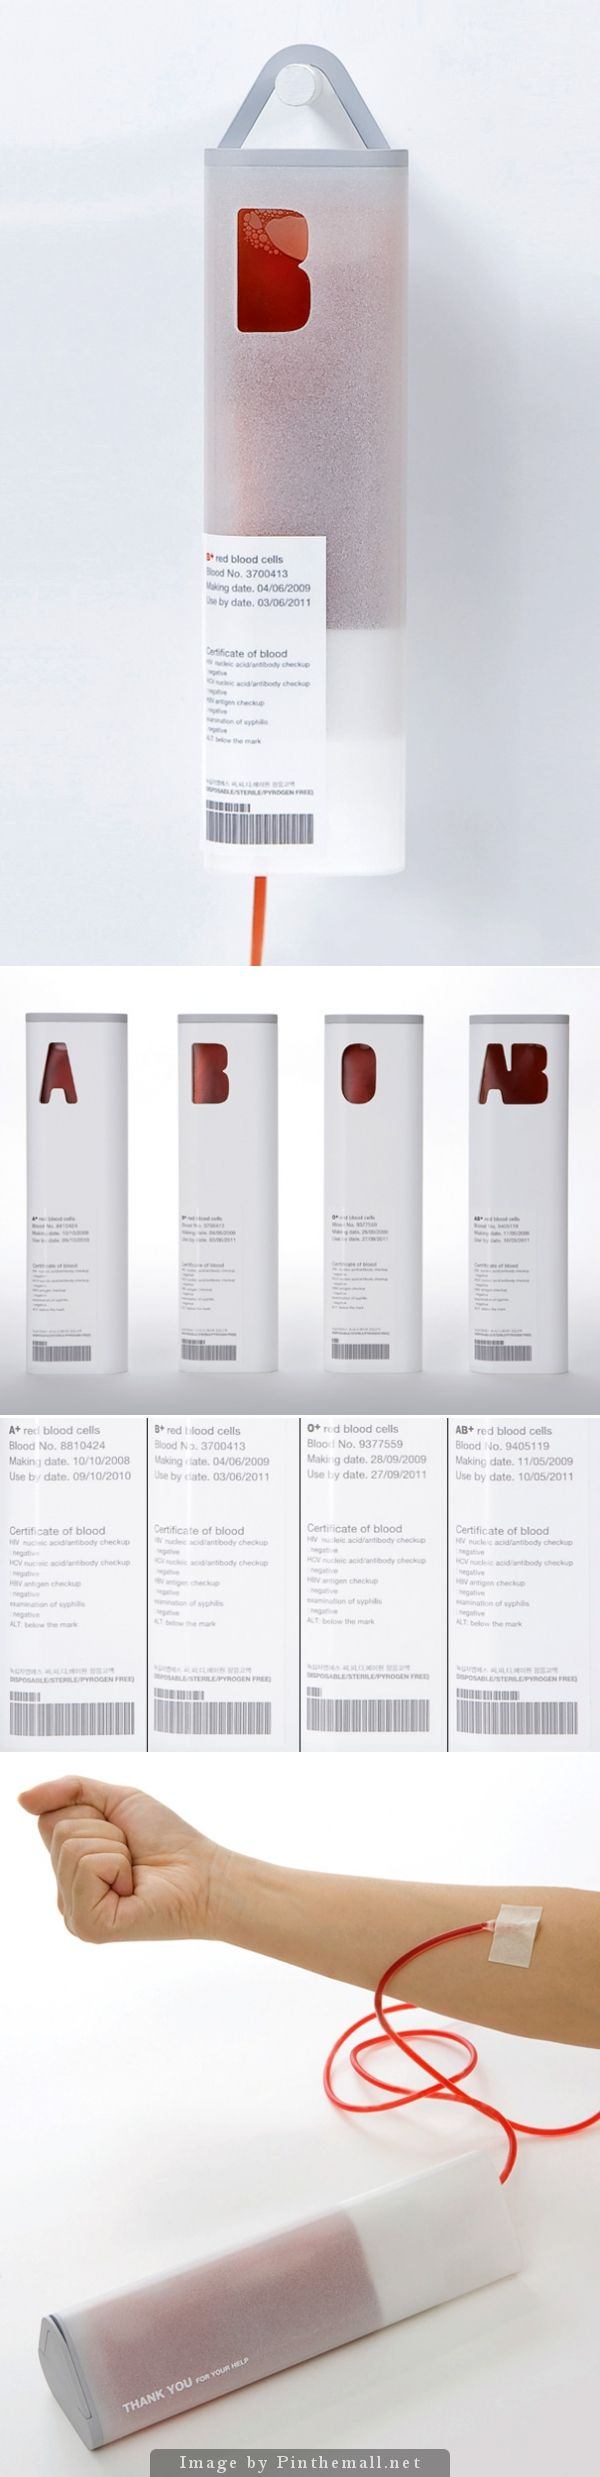 Pretty yet functional blood transfusion and collection #packaging. PD